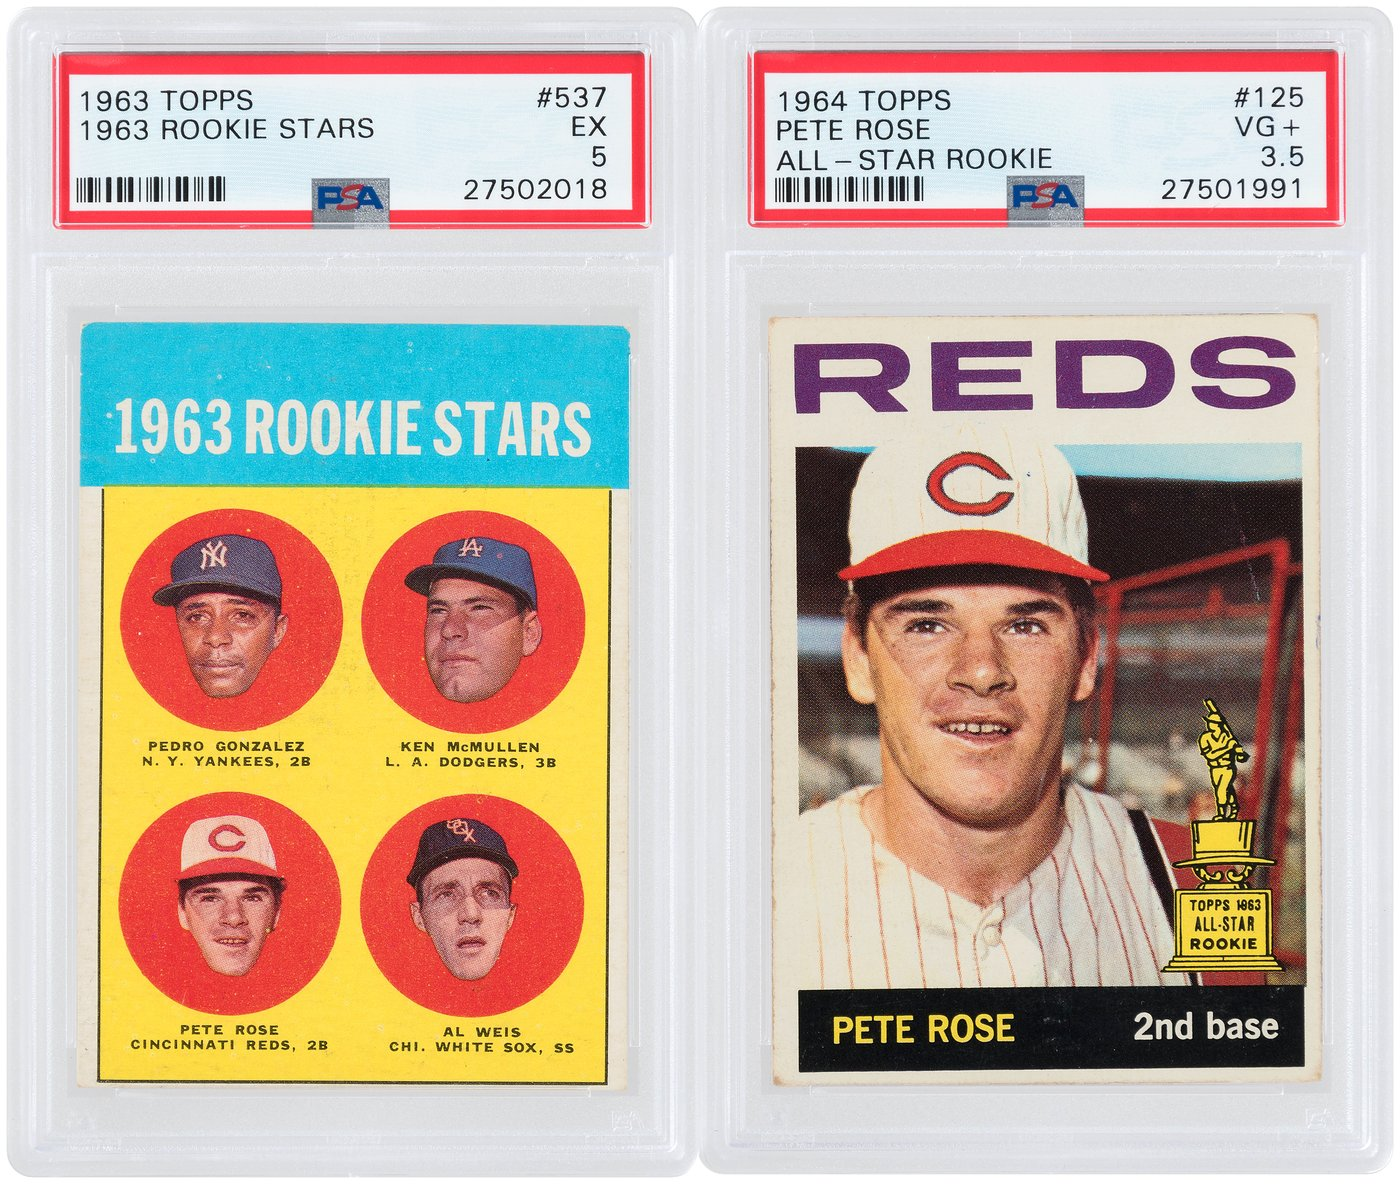 Hakes Pete Rose Topps Psa Graded Pair Wrookie Card